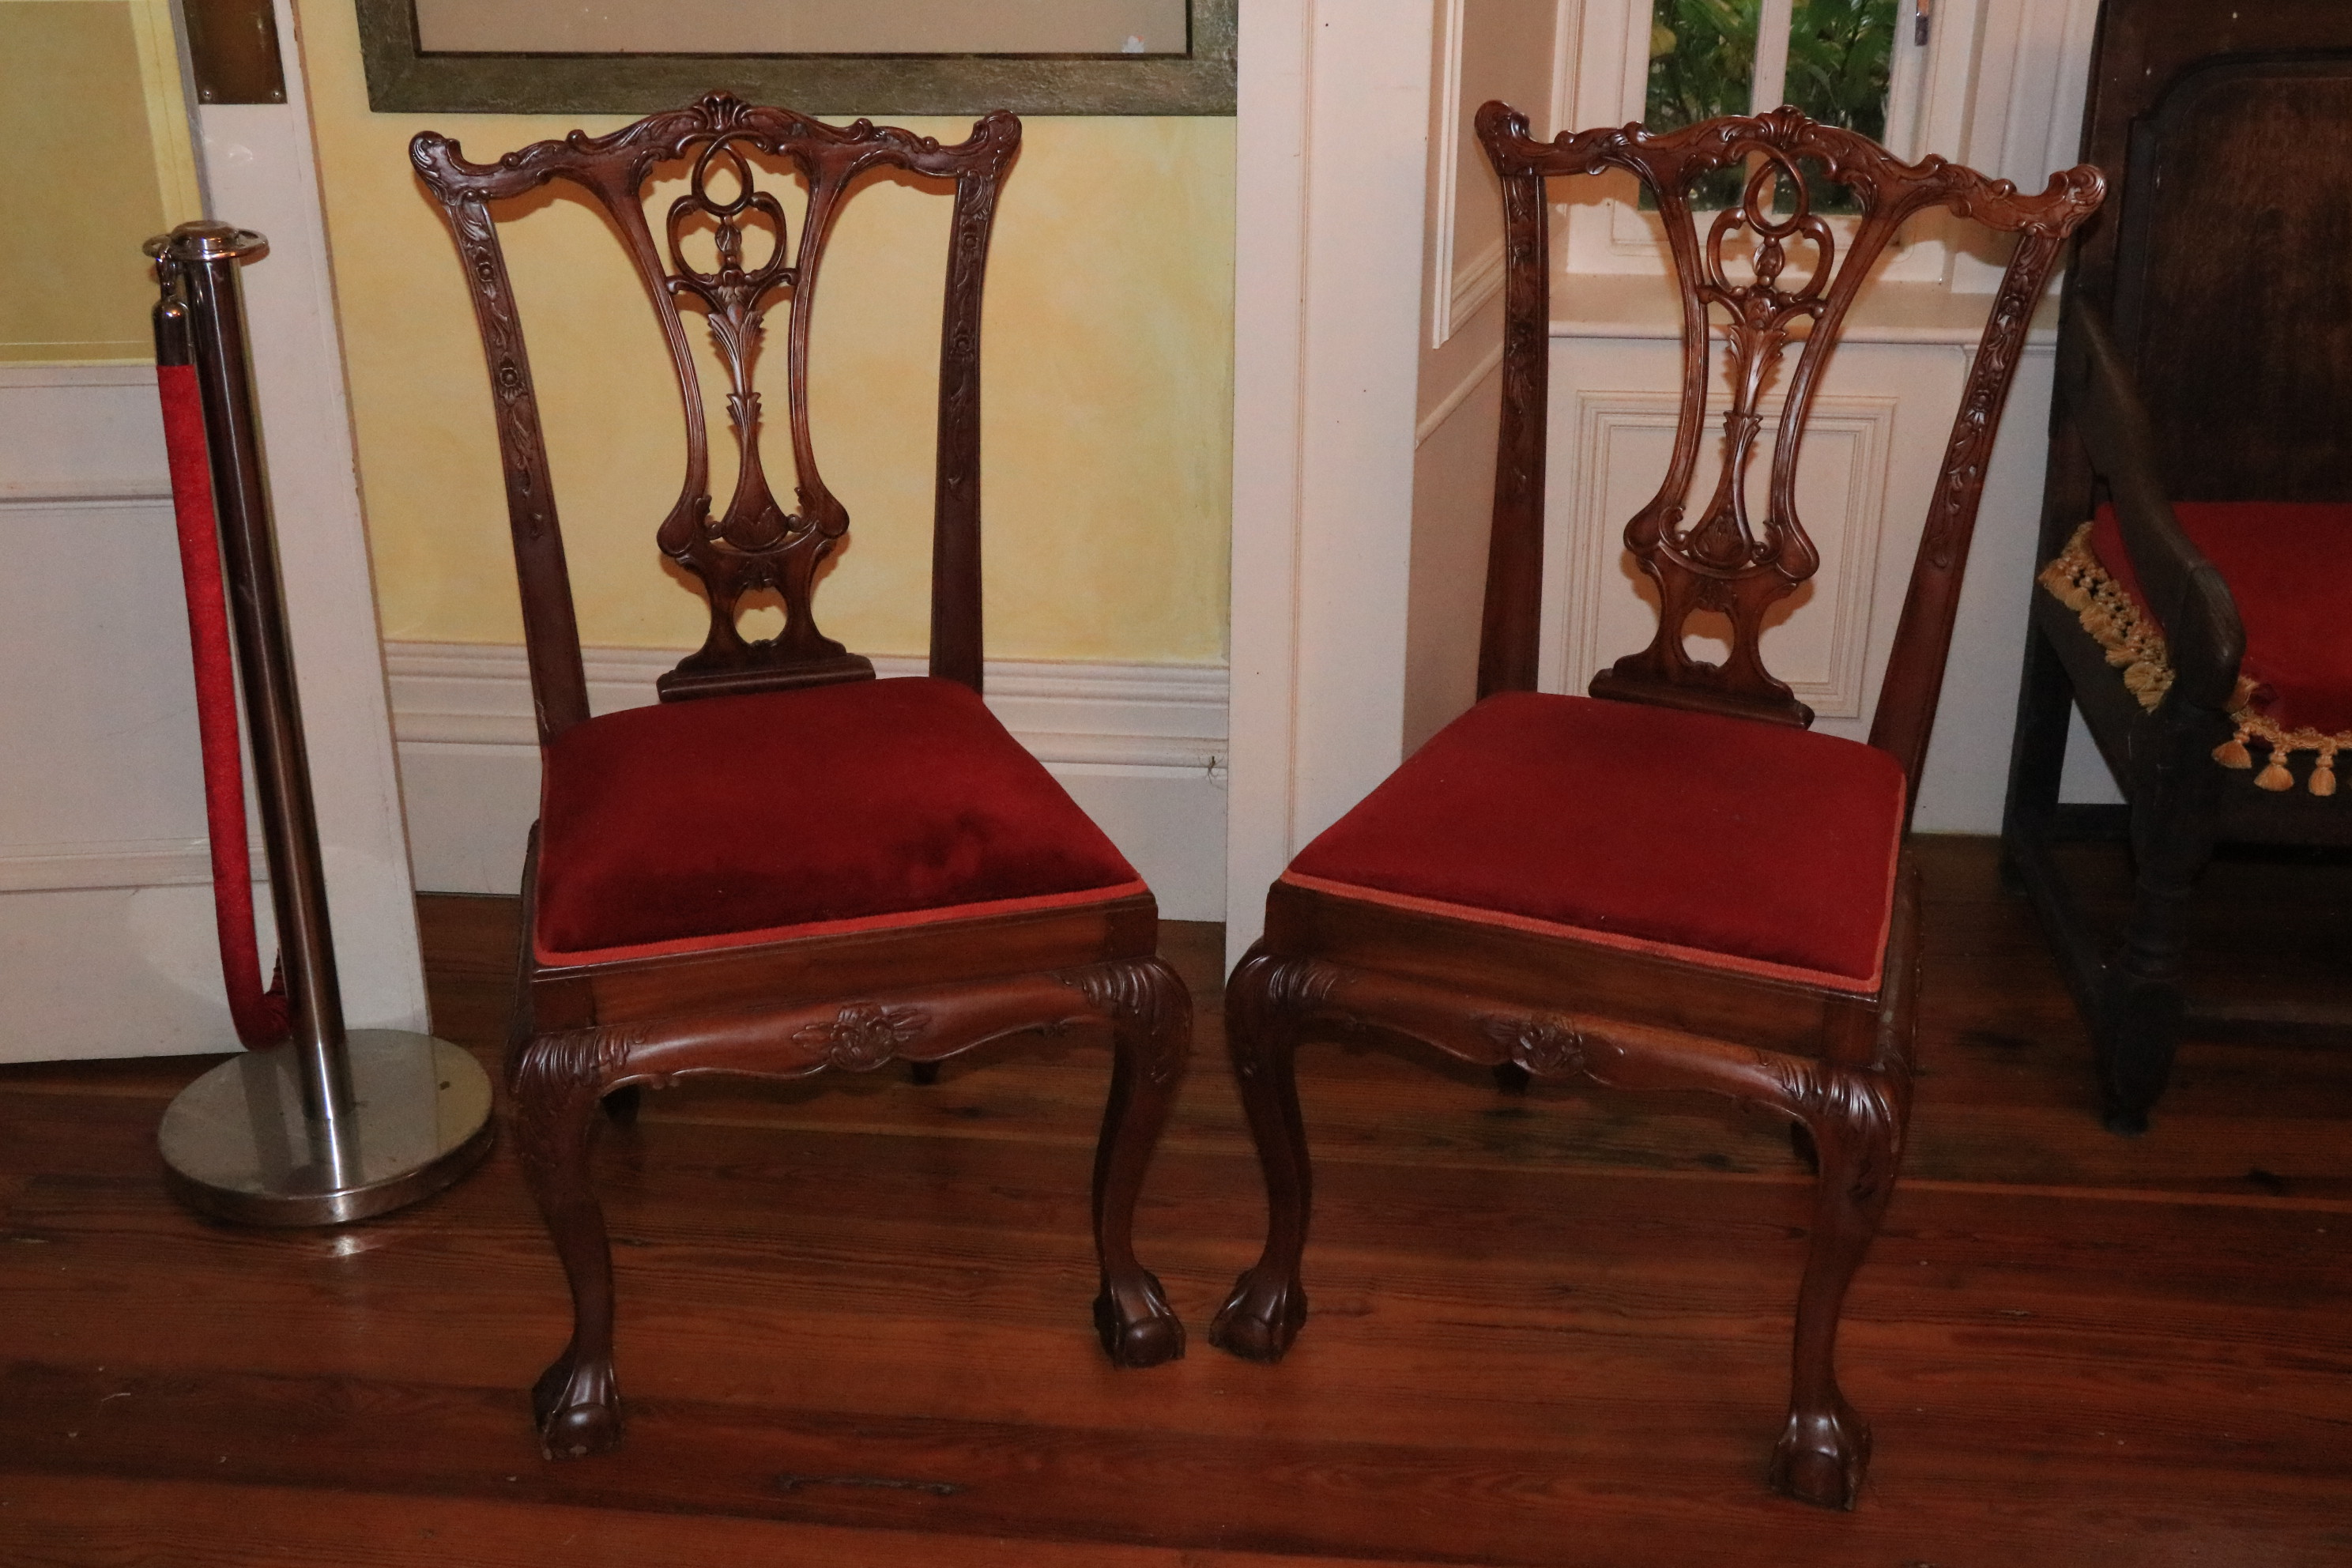 A set of 8 Chippendale style mahogany Dining Chairs, each with pierced vase shaped splat on front